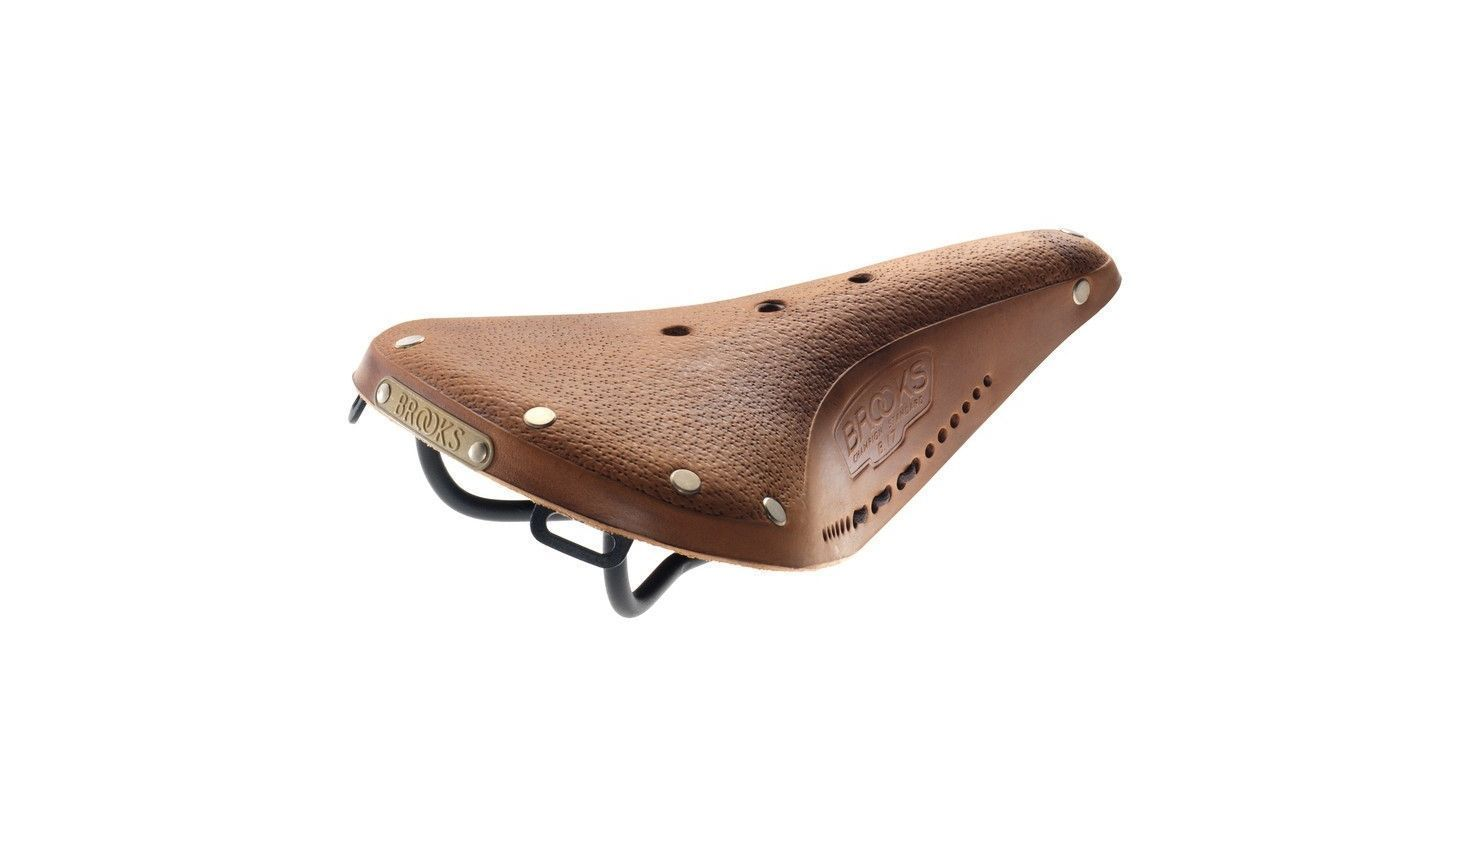 Brooks B17 Standard- Aged Leder dark-tan, Herren-Sattel dark tan